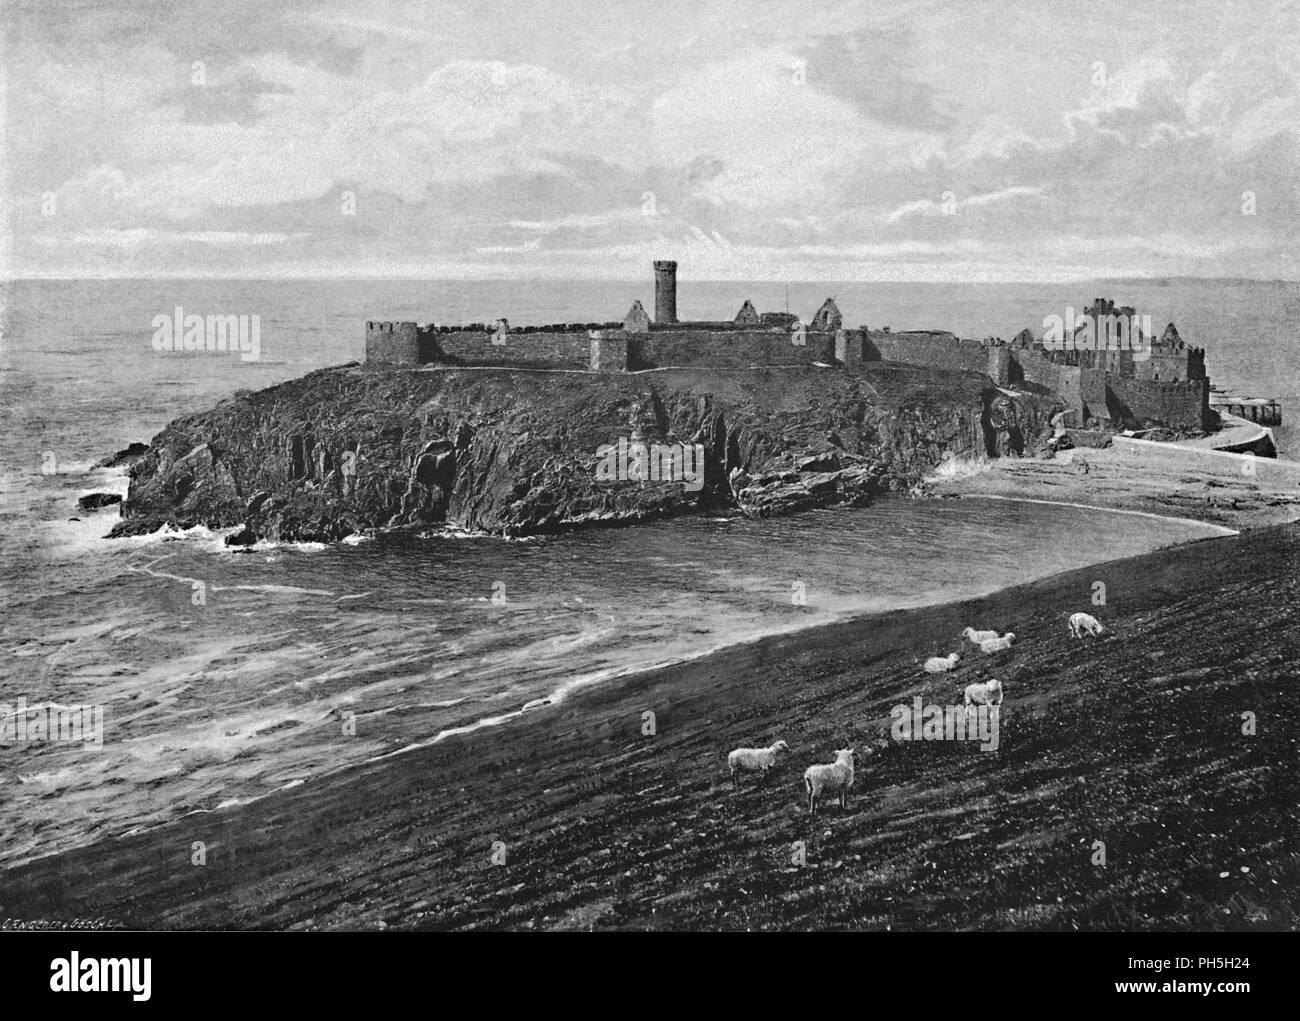 'St. Patrick's Island, Peel, Isle of Man', c1896. From Pictorial England and Wales. [Cassell and Company, Limited, London, Paris & Melbourne, c1896] - Stock Image